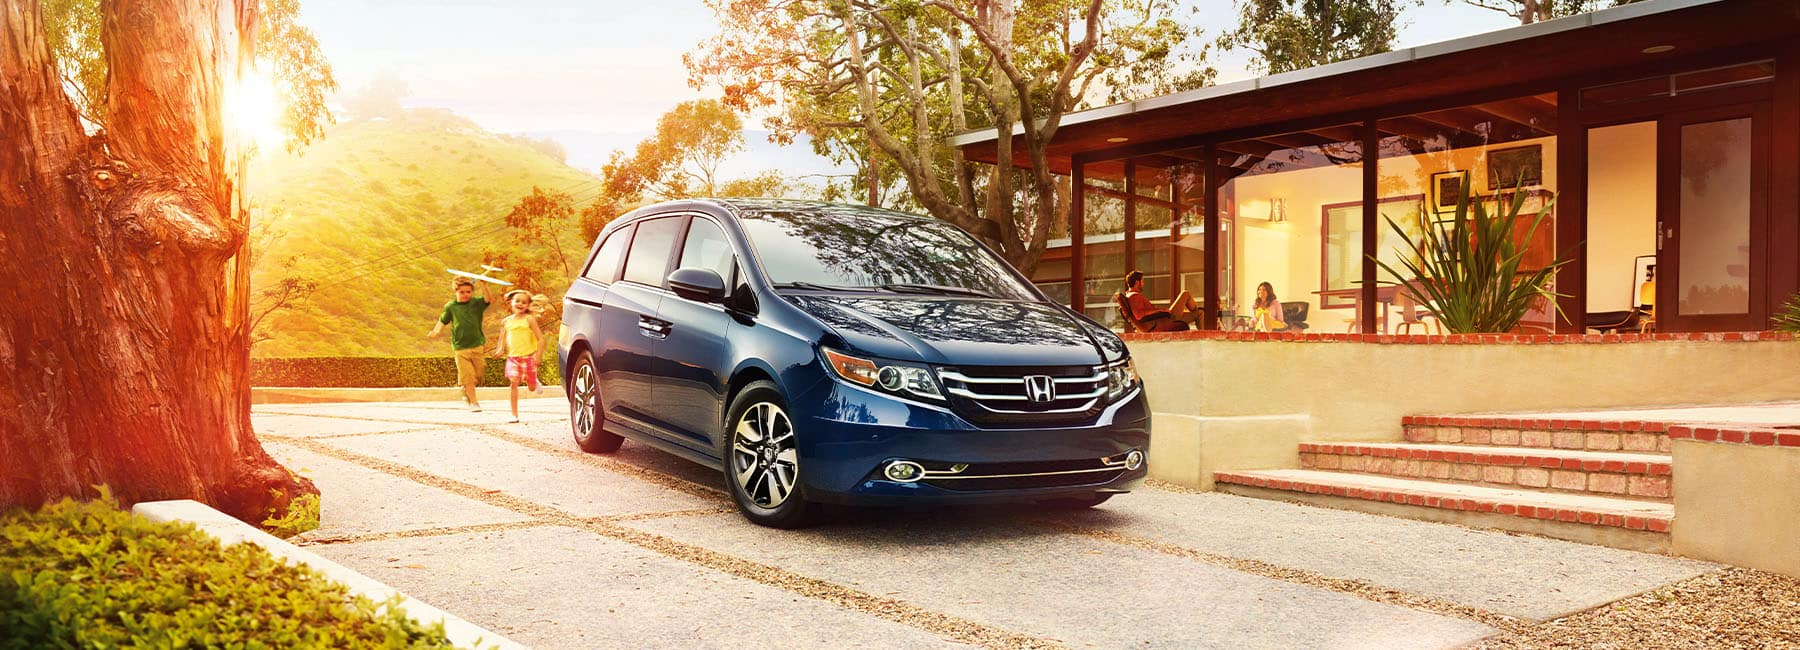 Used Honda Odyssey parked in front of a home while kids play in the driveway